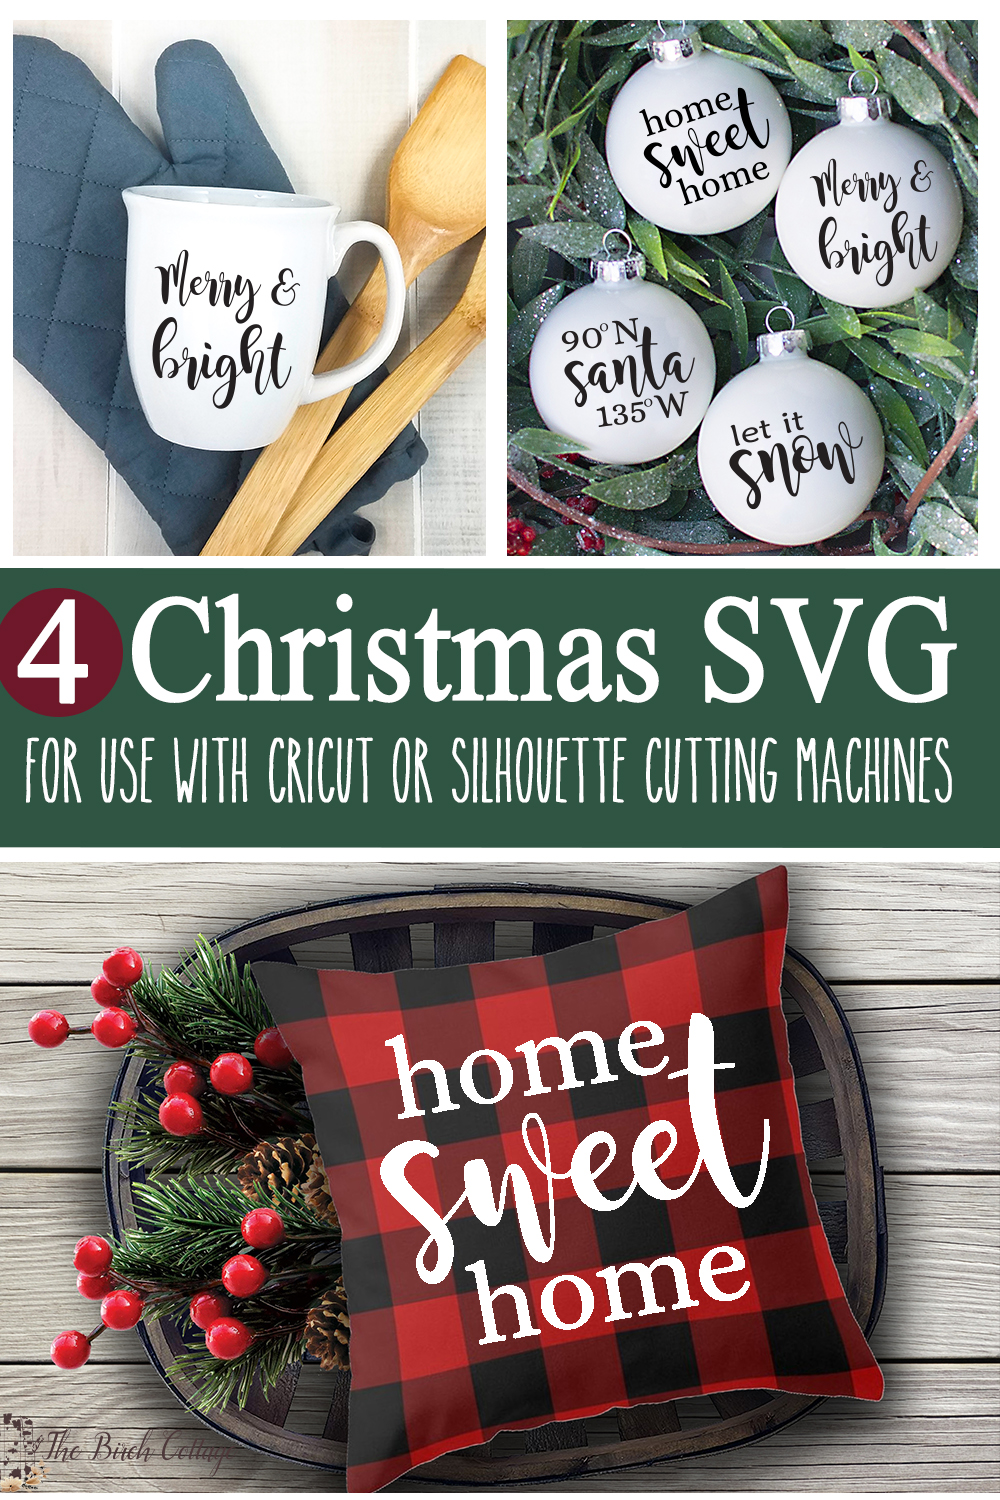 Four Christmas Svg Files For Use With Cricut Or Silhouette The Birch Cottage